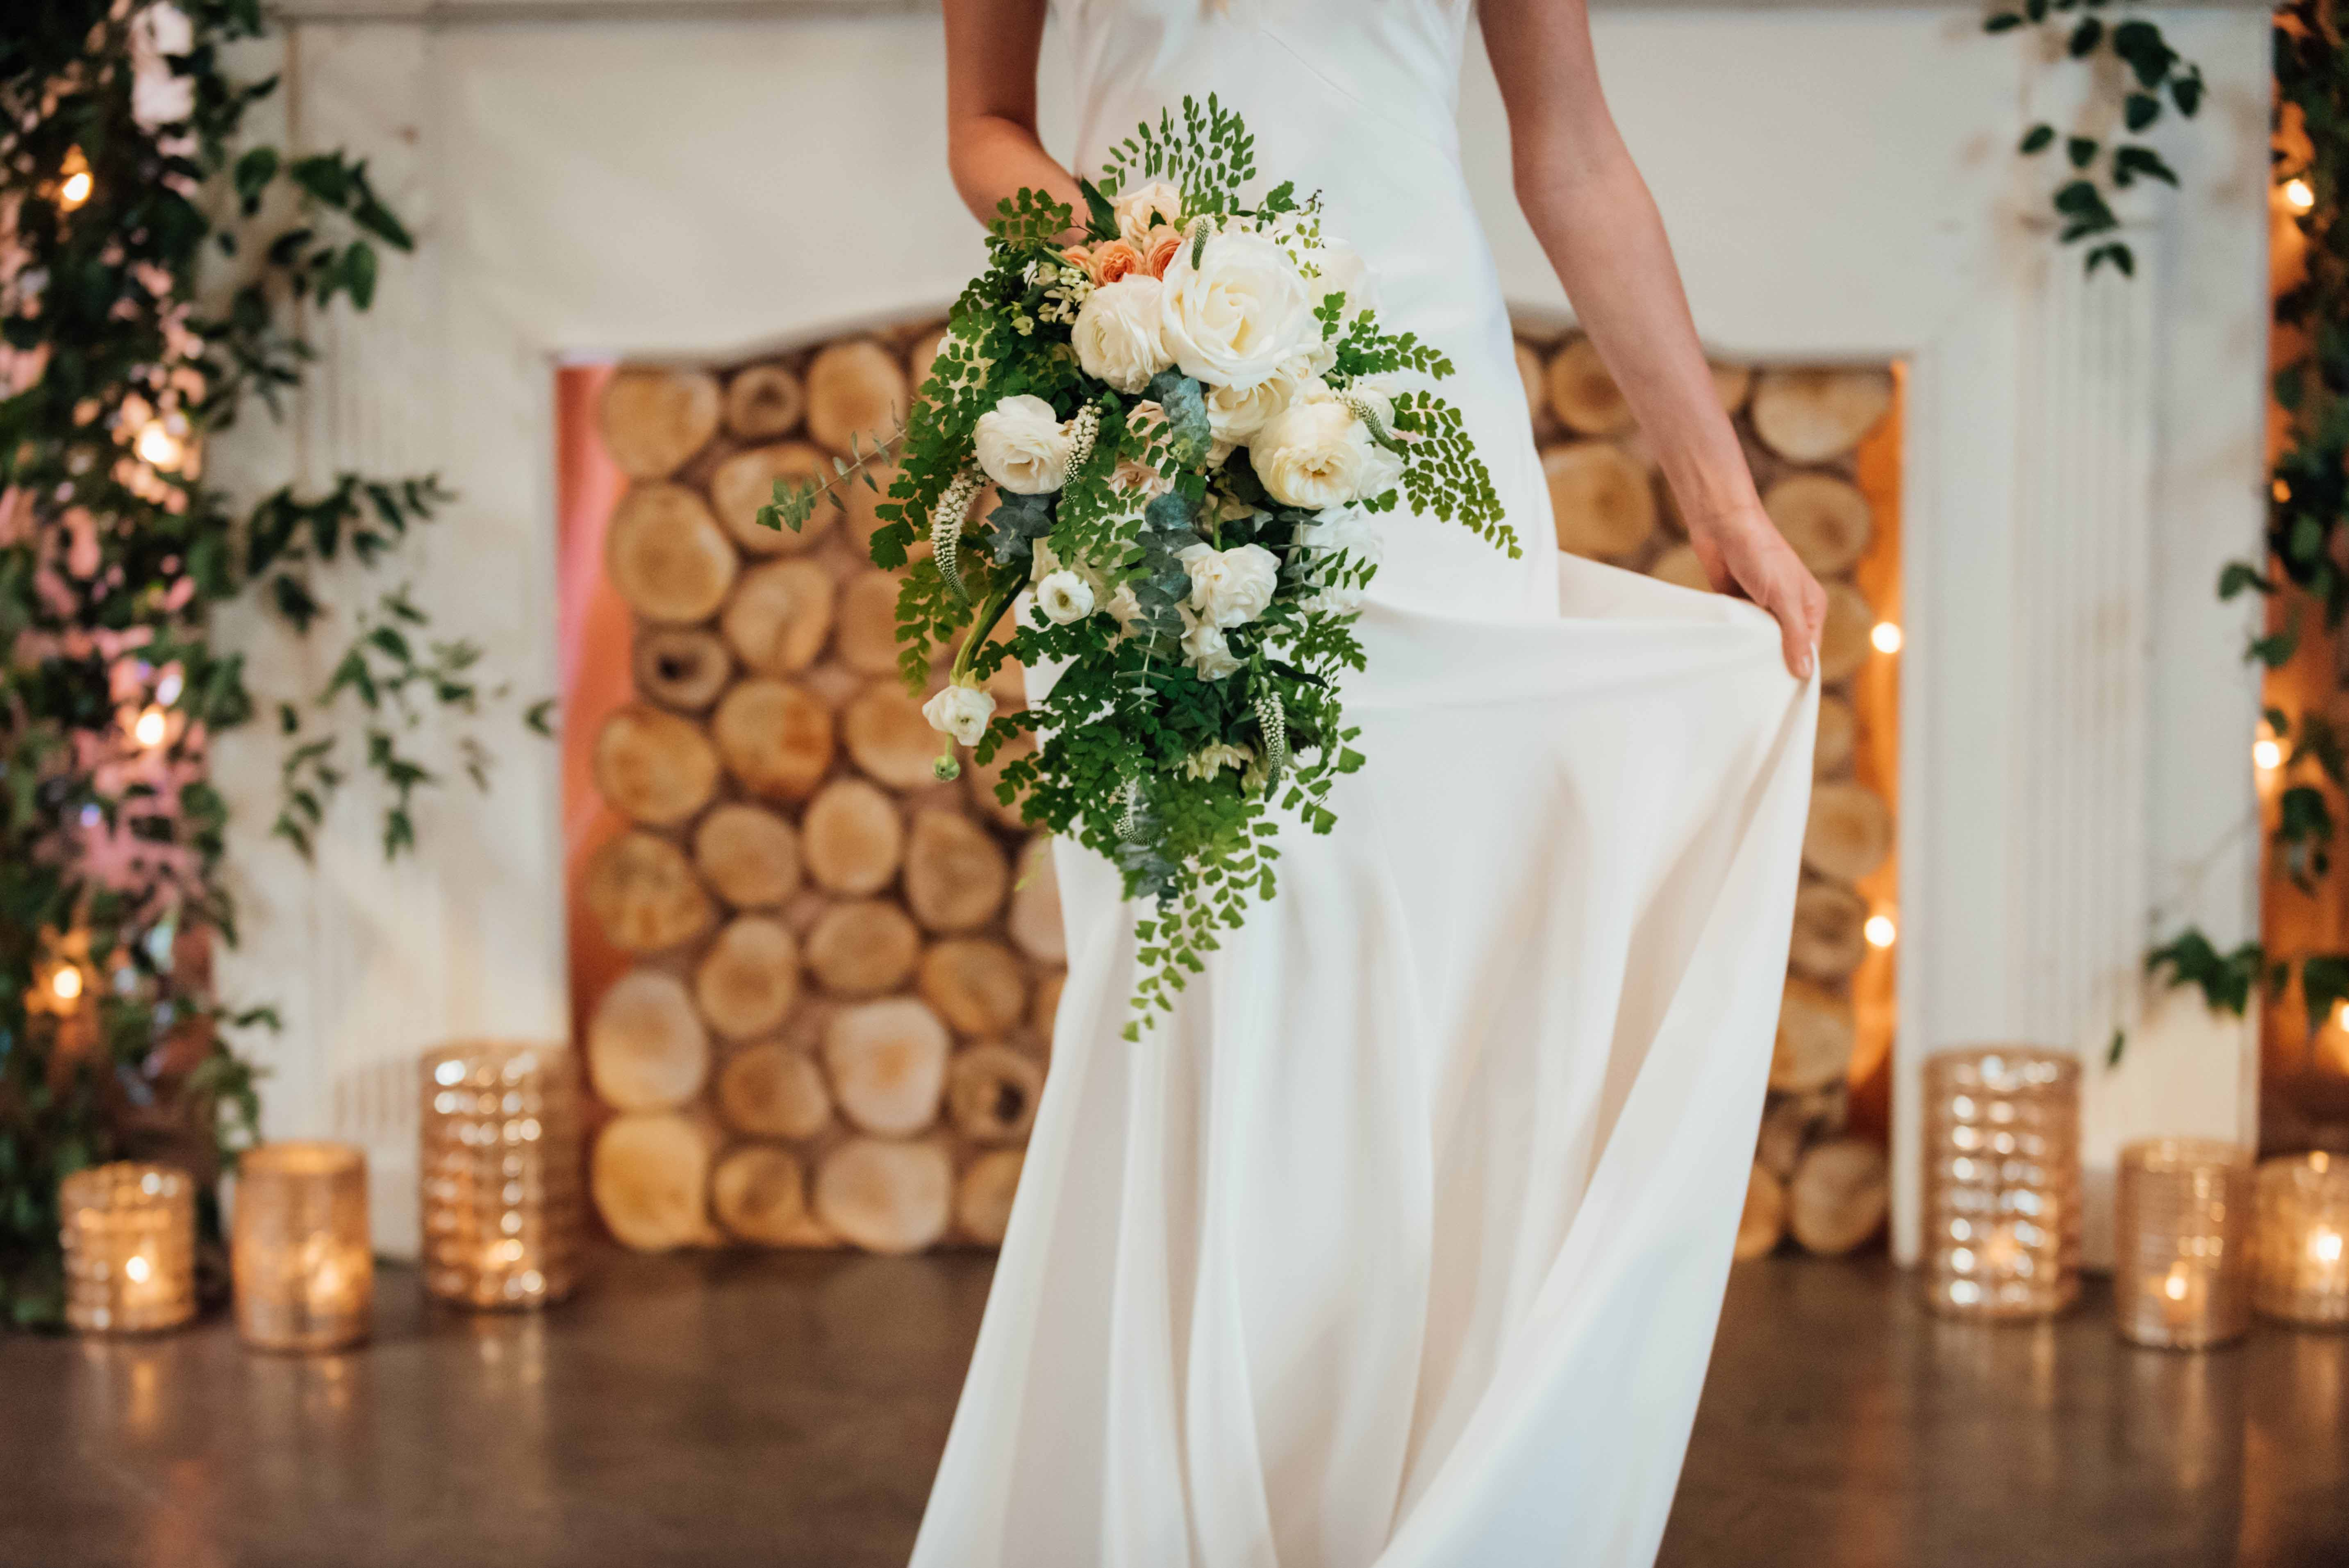 Pacific northwest bouquet of ivory roses with maidenhair ferns